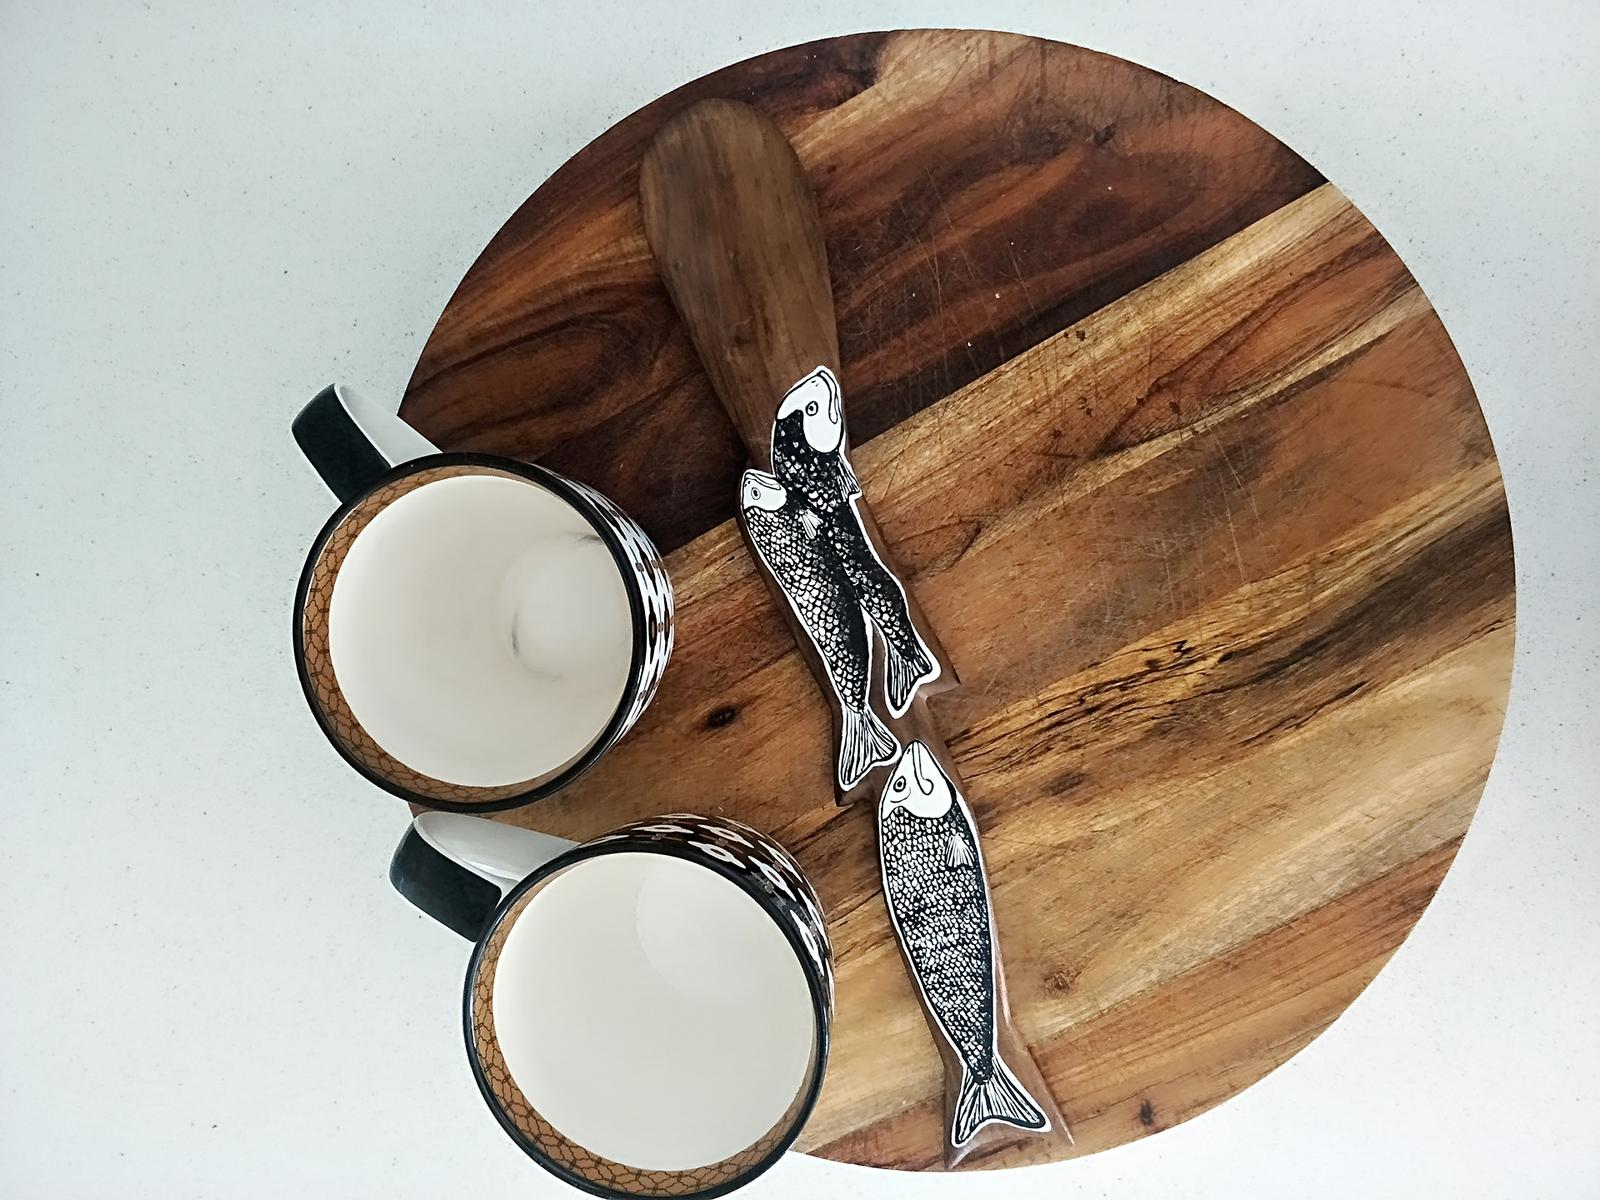 Upcycled wooden Spoon